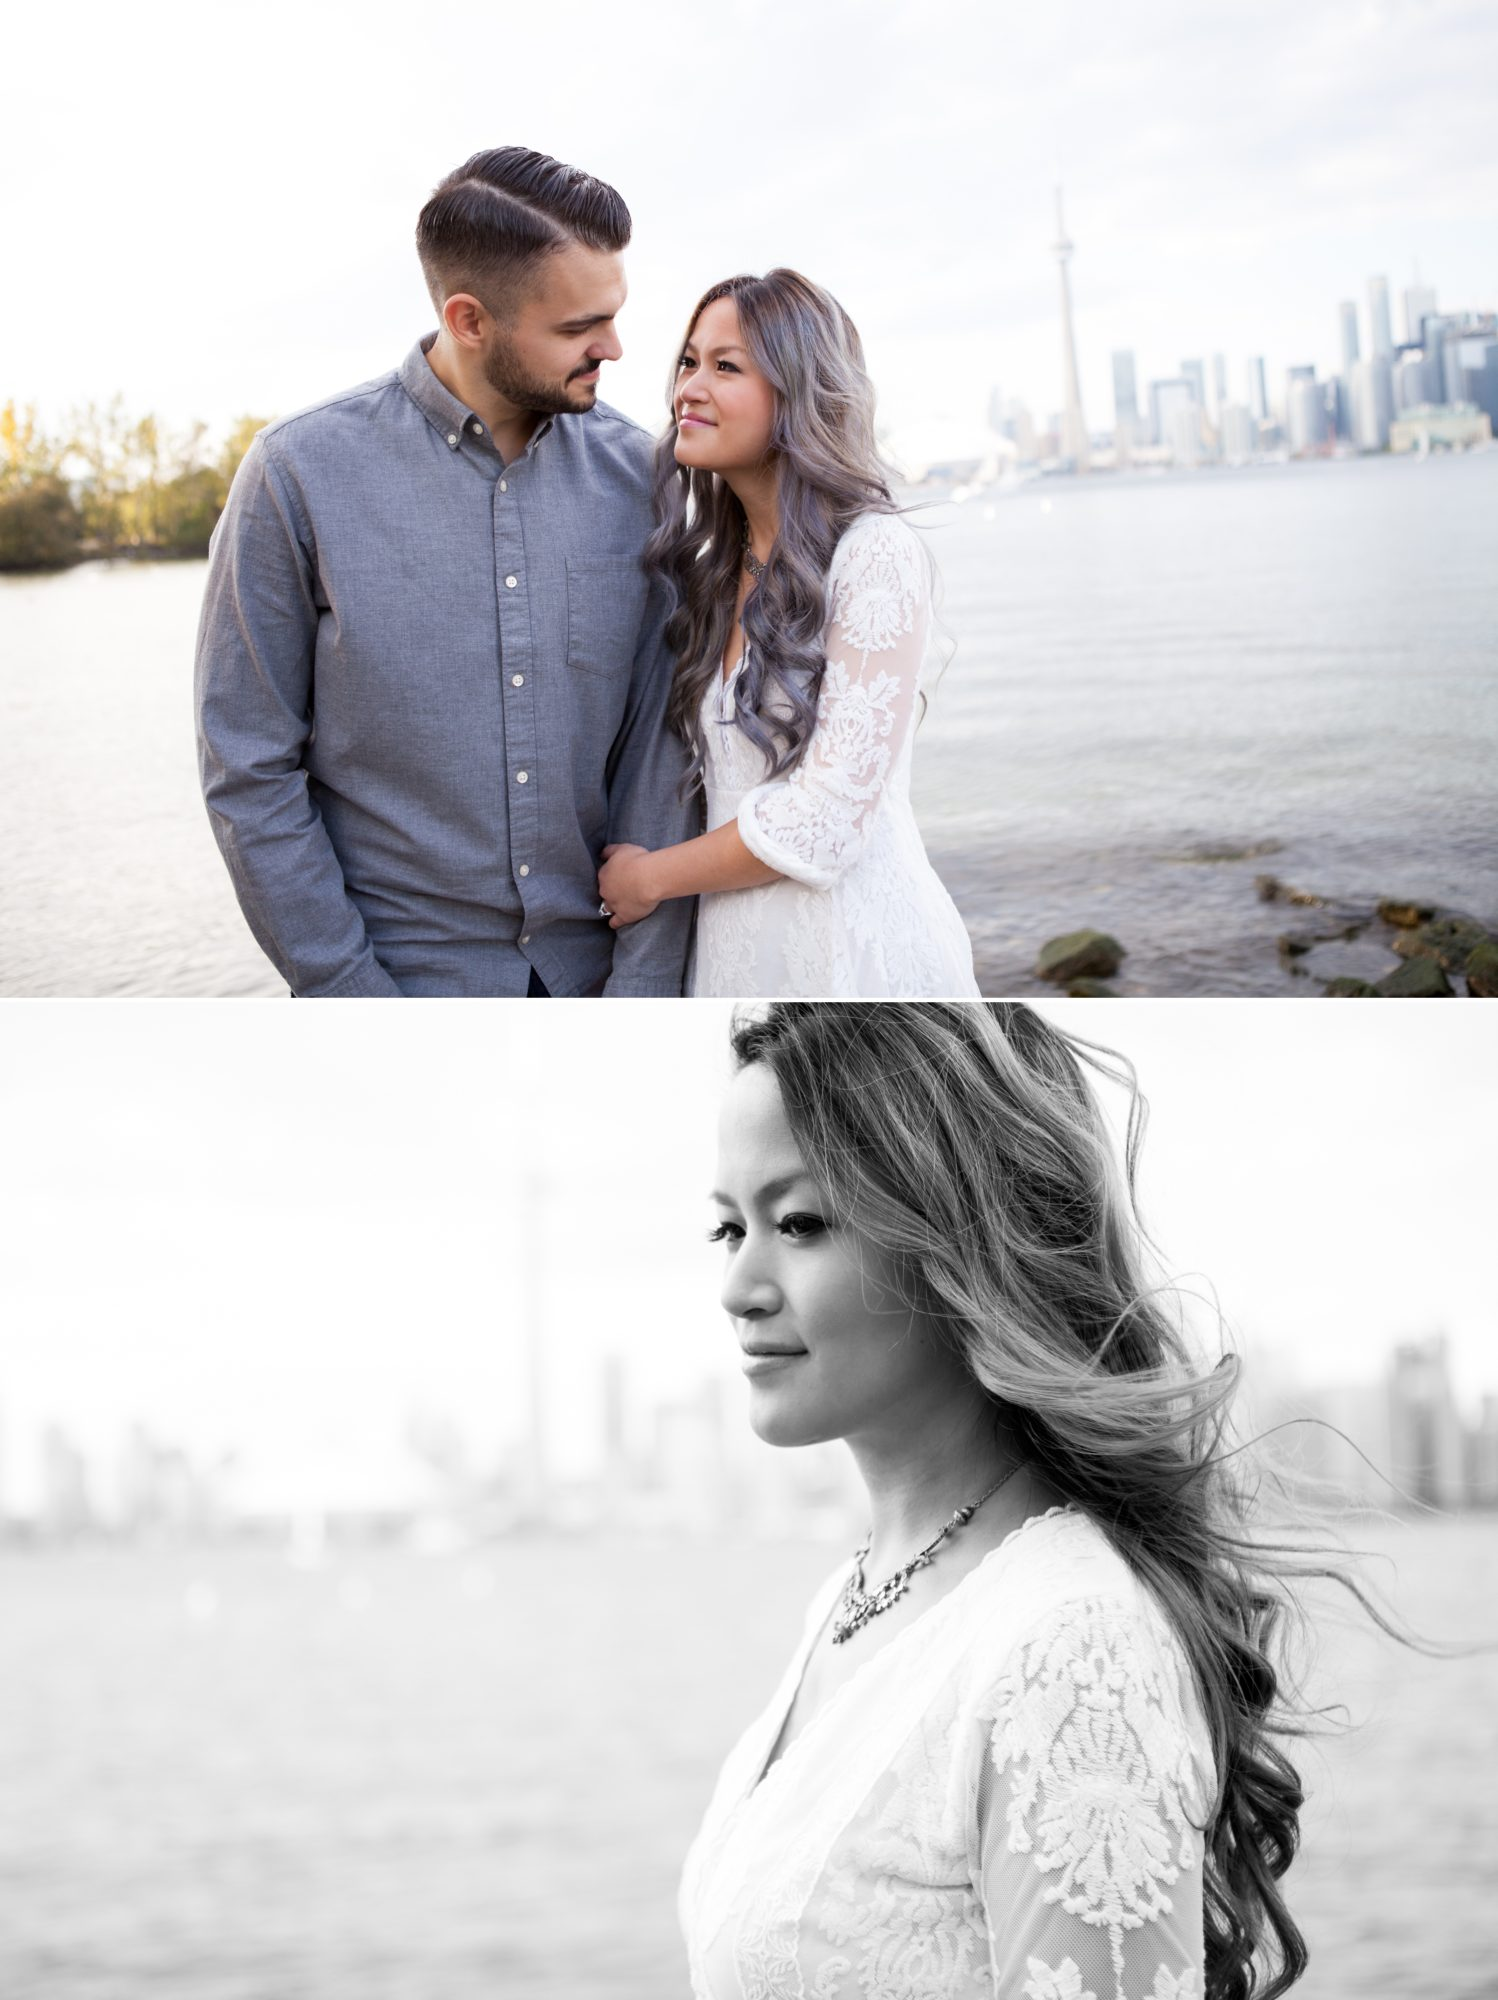 Skyline Couple CN Tower Toronto Island Engagement Shoot Zsuzsi Pal Photography